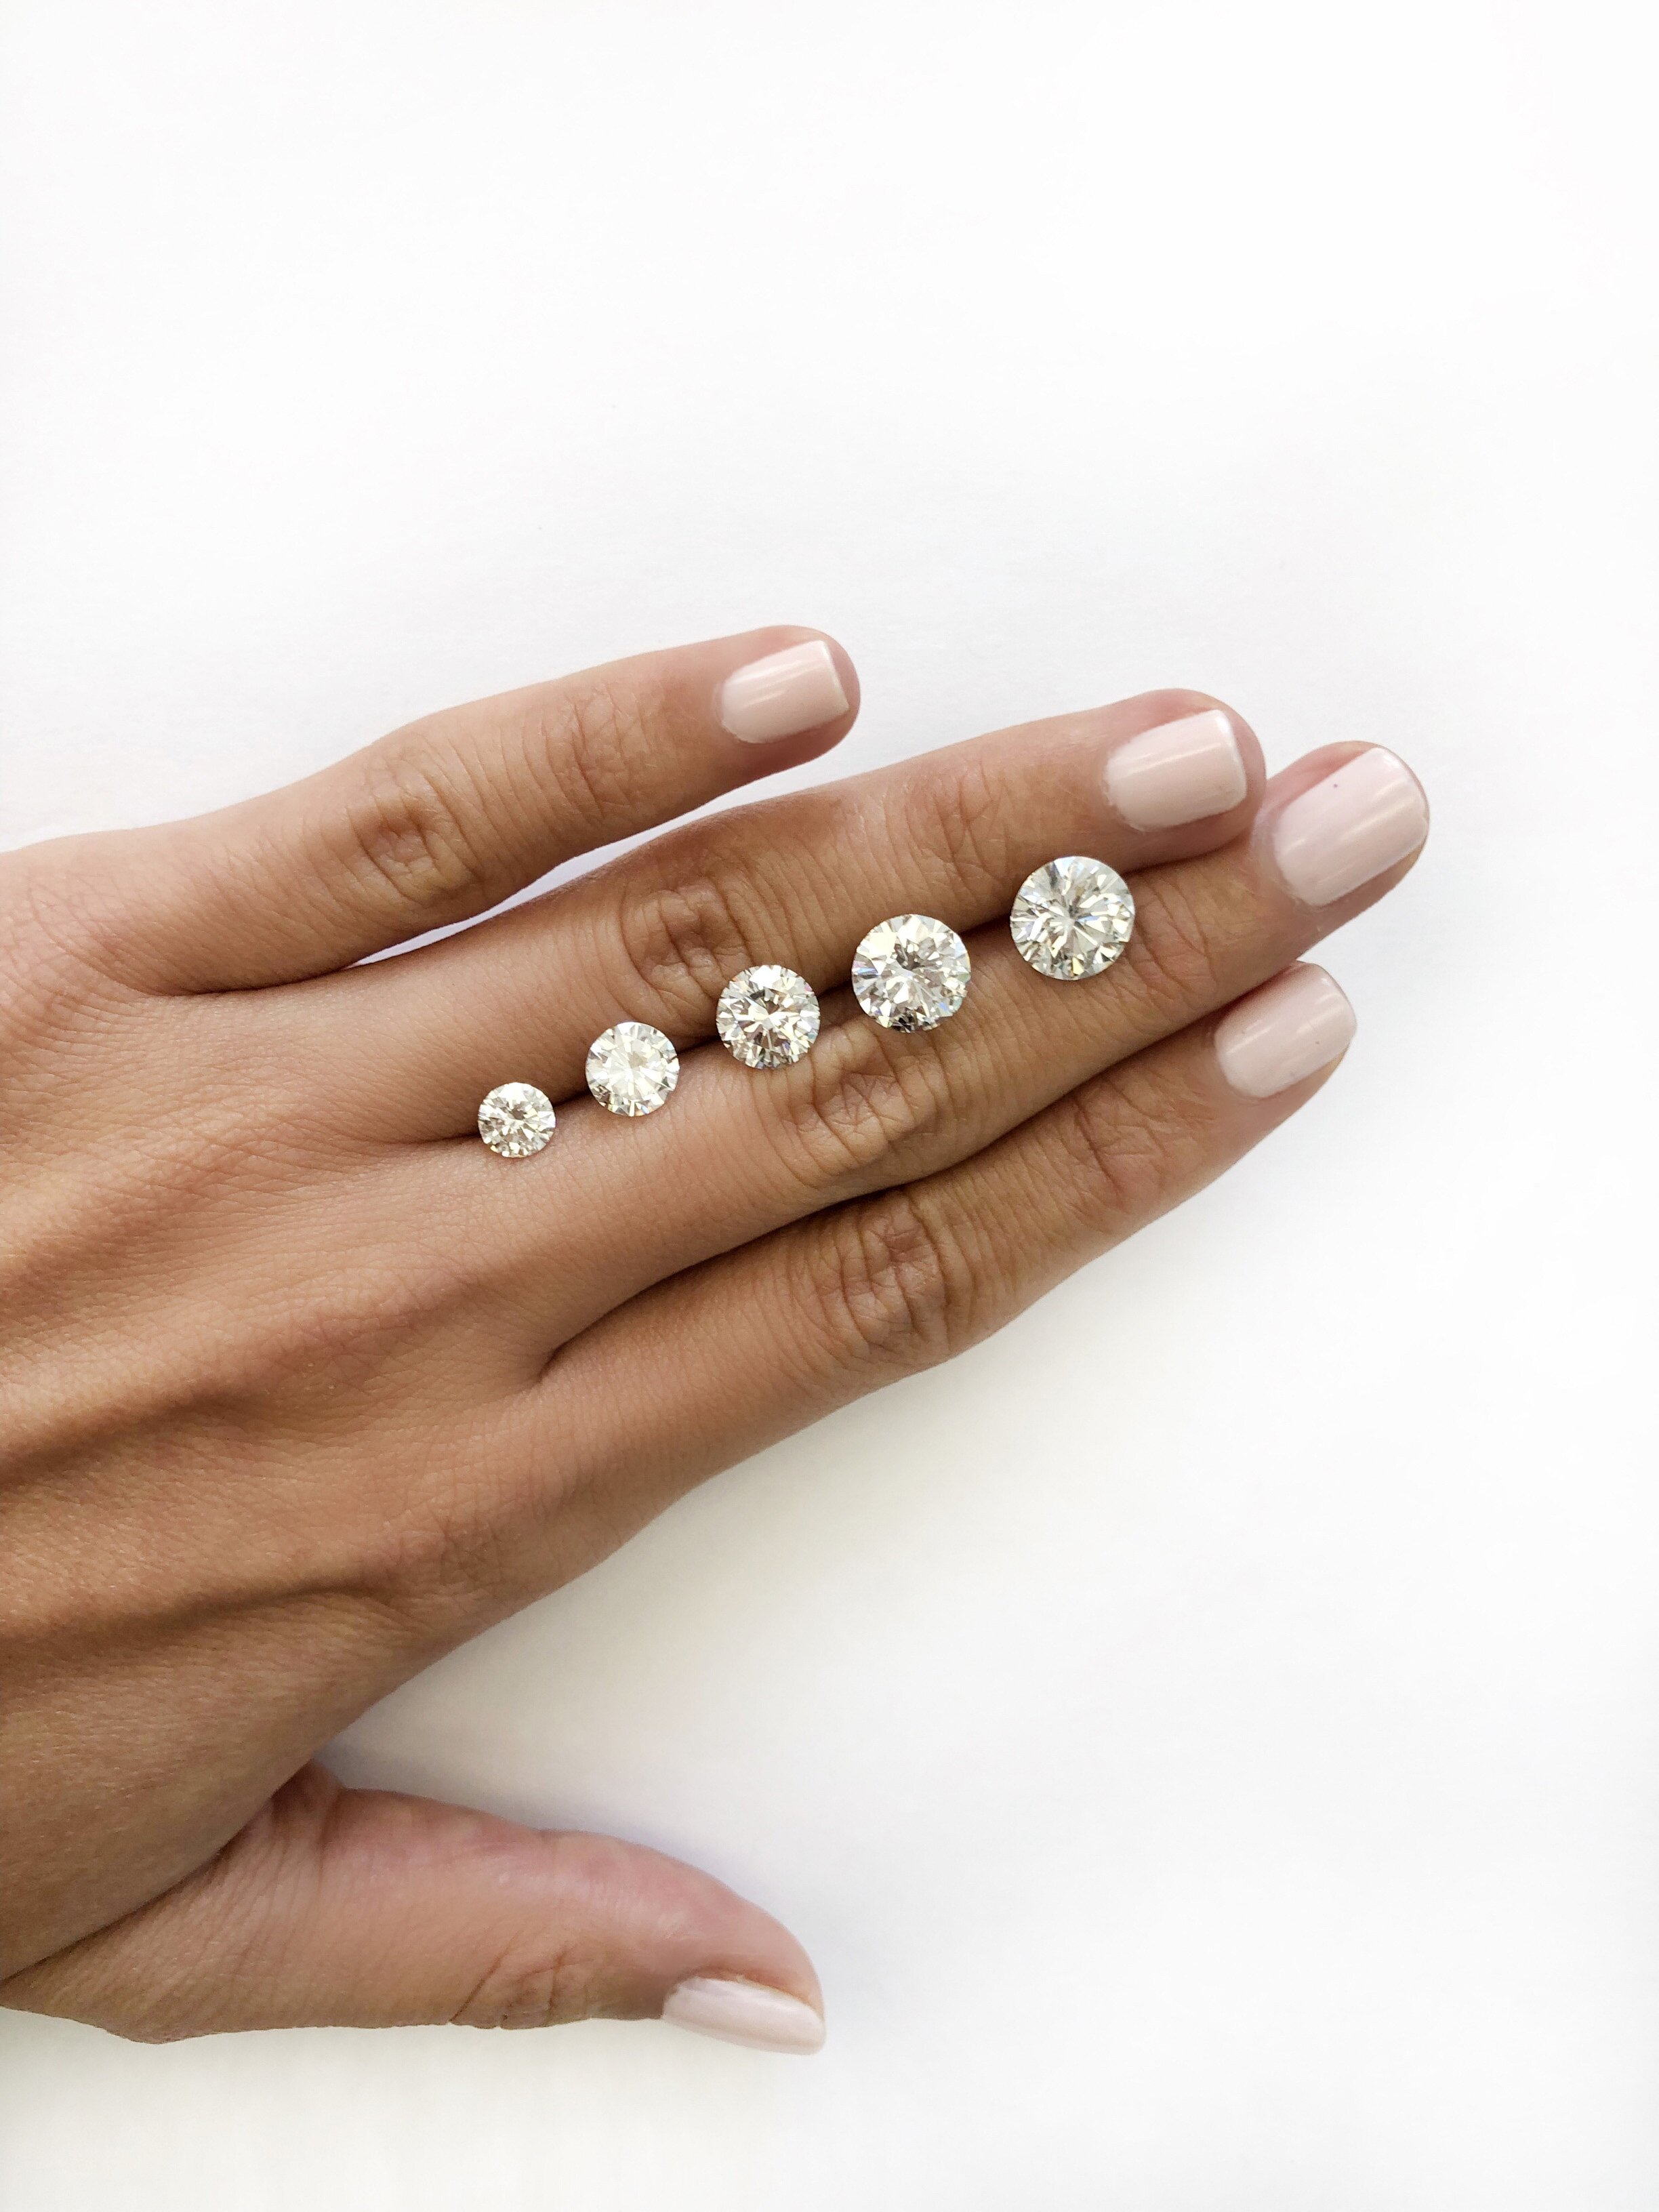 This Is What A Diamond Looks Like At Every Size From 5 Carats To 10 Martha Stewart Weddings